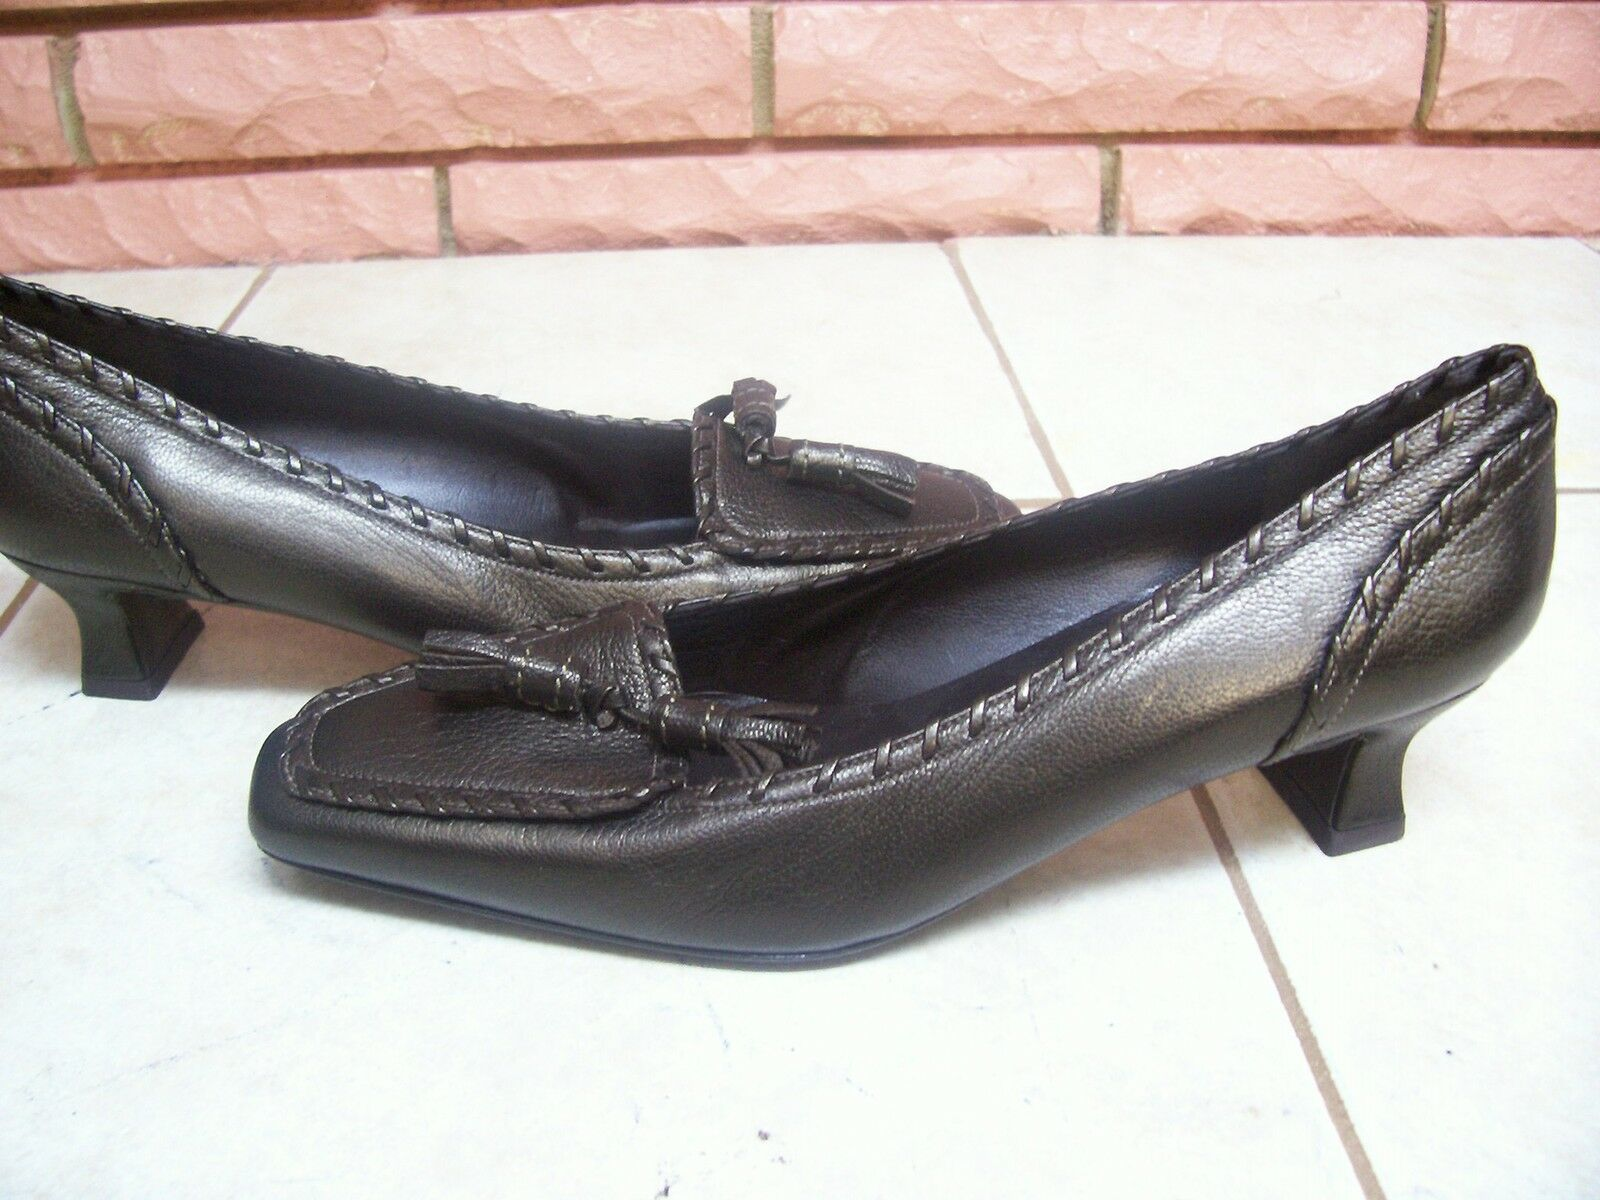 STUART WEITZMAN BROWN LADIES LEATHER PUMPS WITH TASELS SIZE 8M